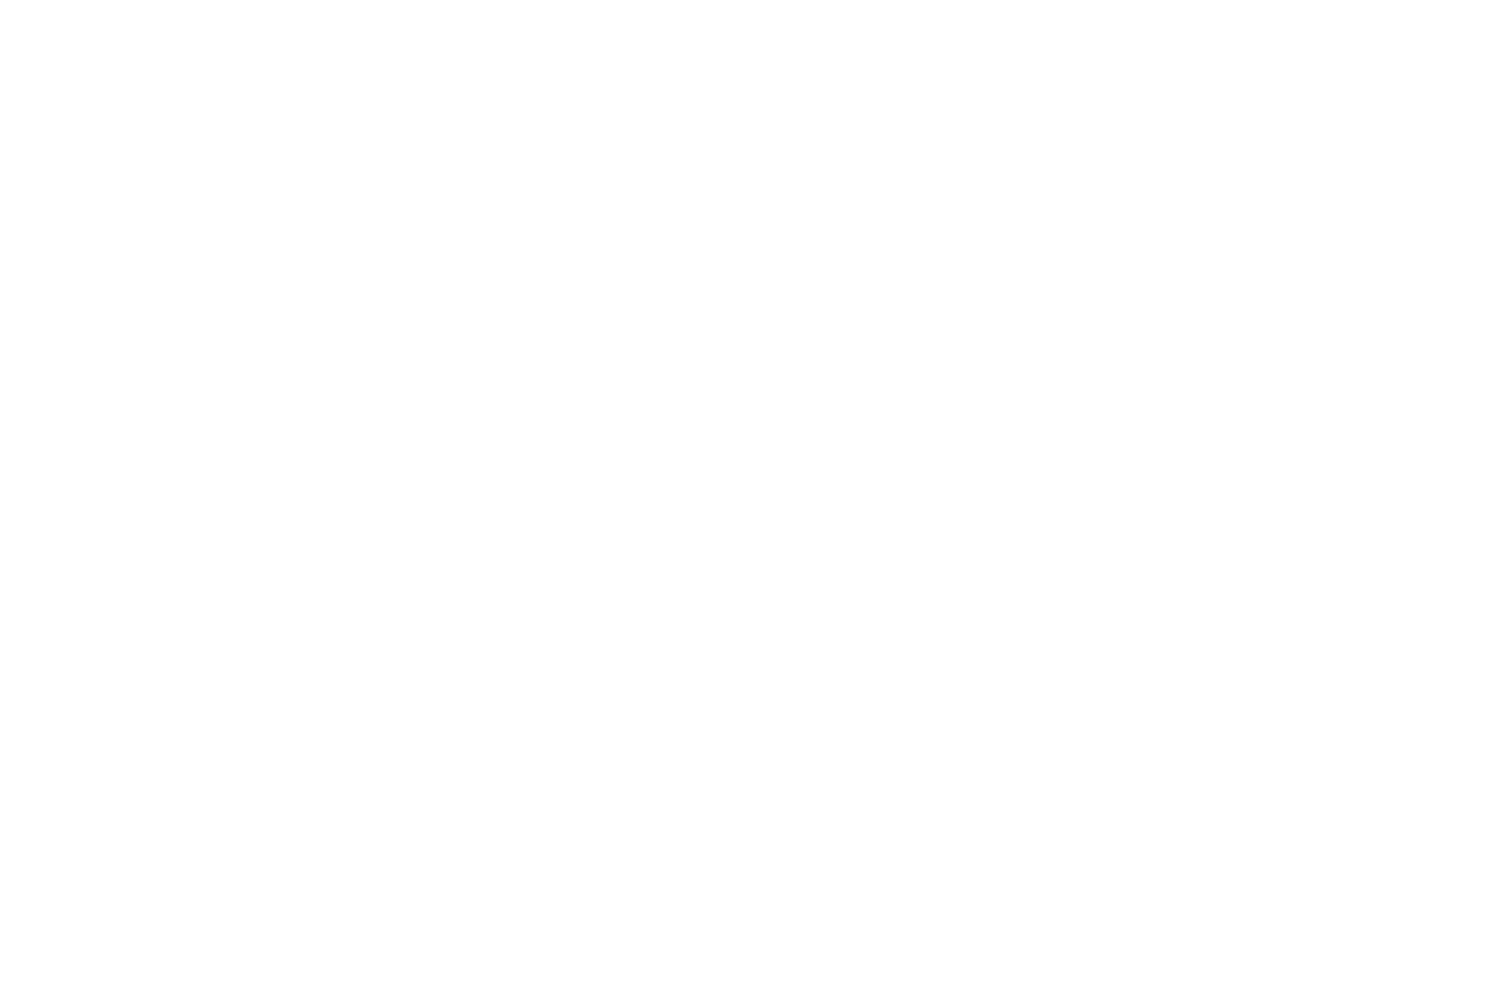 MARK DENNEY | LANDSCAPE PHOTOGRAPHY